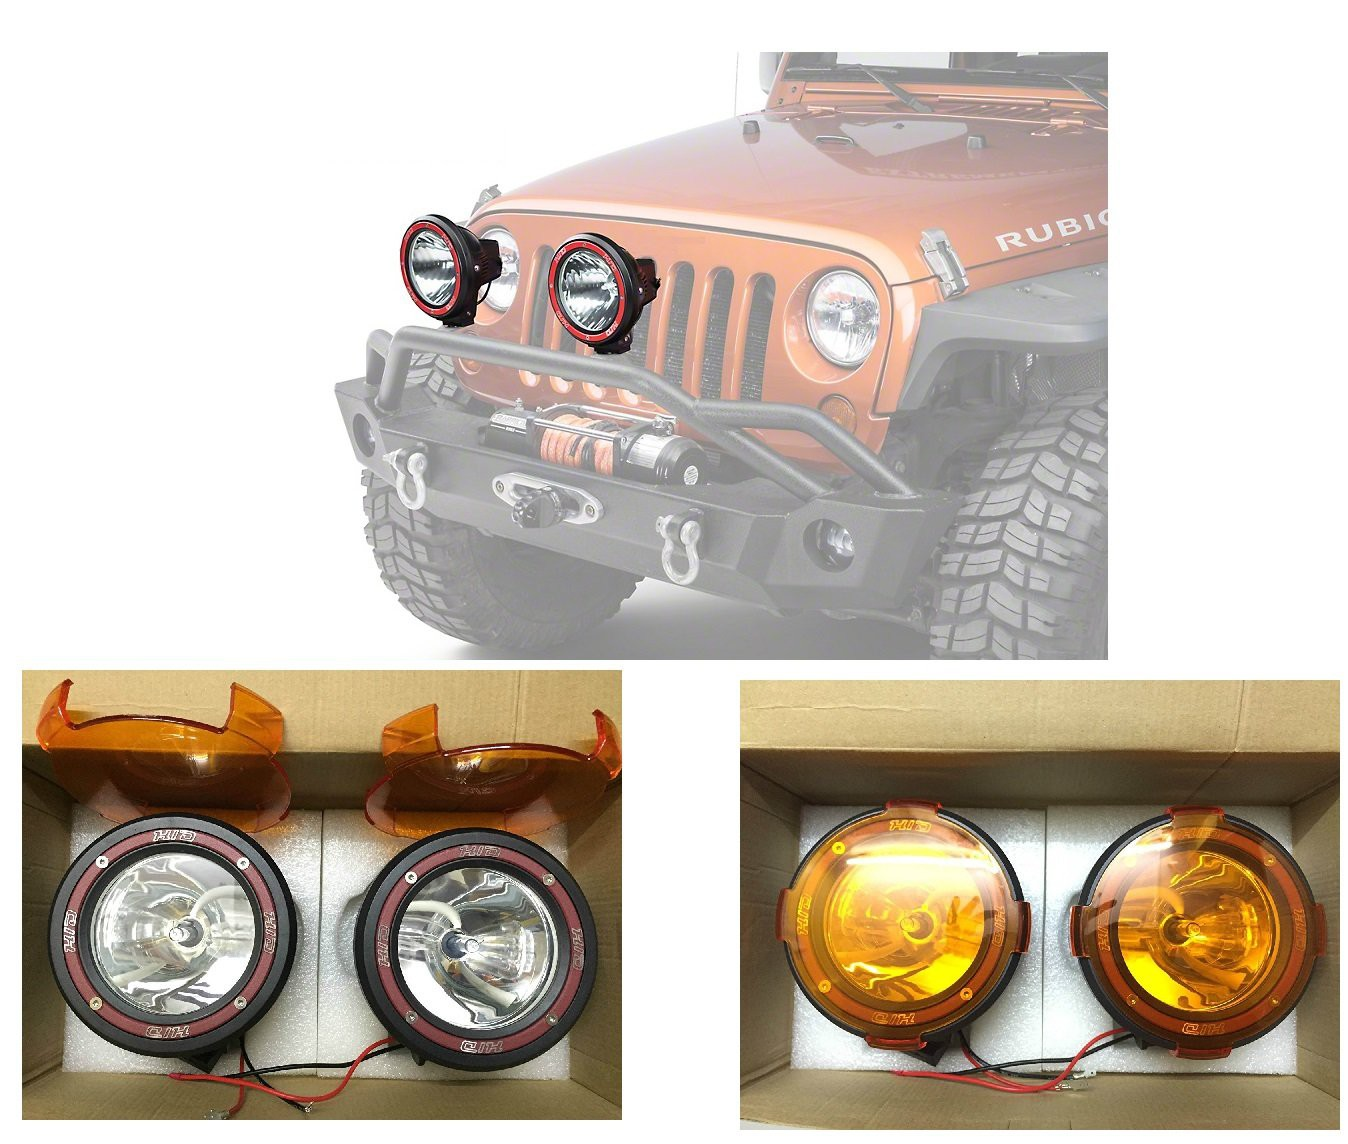 hid-xenon-fog-light-4-inch-lamp-1000-meter-work-light-all-cars-and-suv-with-yellow-cover-off-road-1km-range-set-of-2-black-compatible-with-gm-hummer-h3